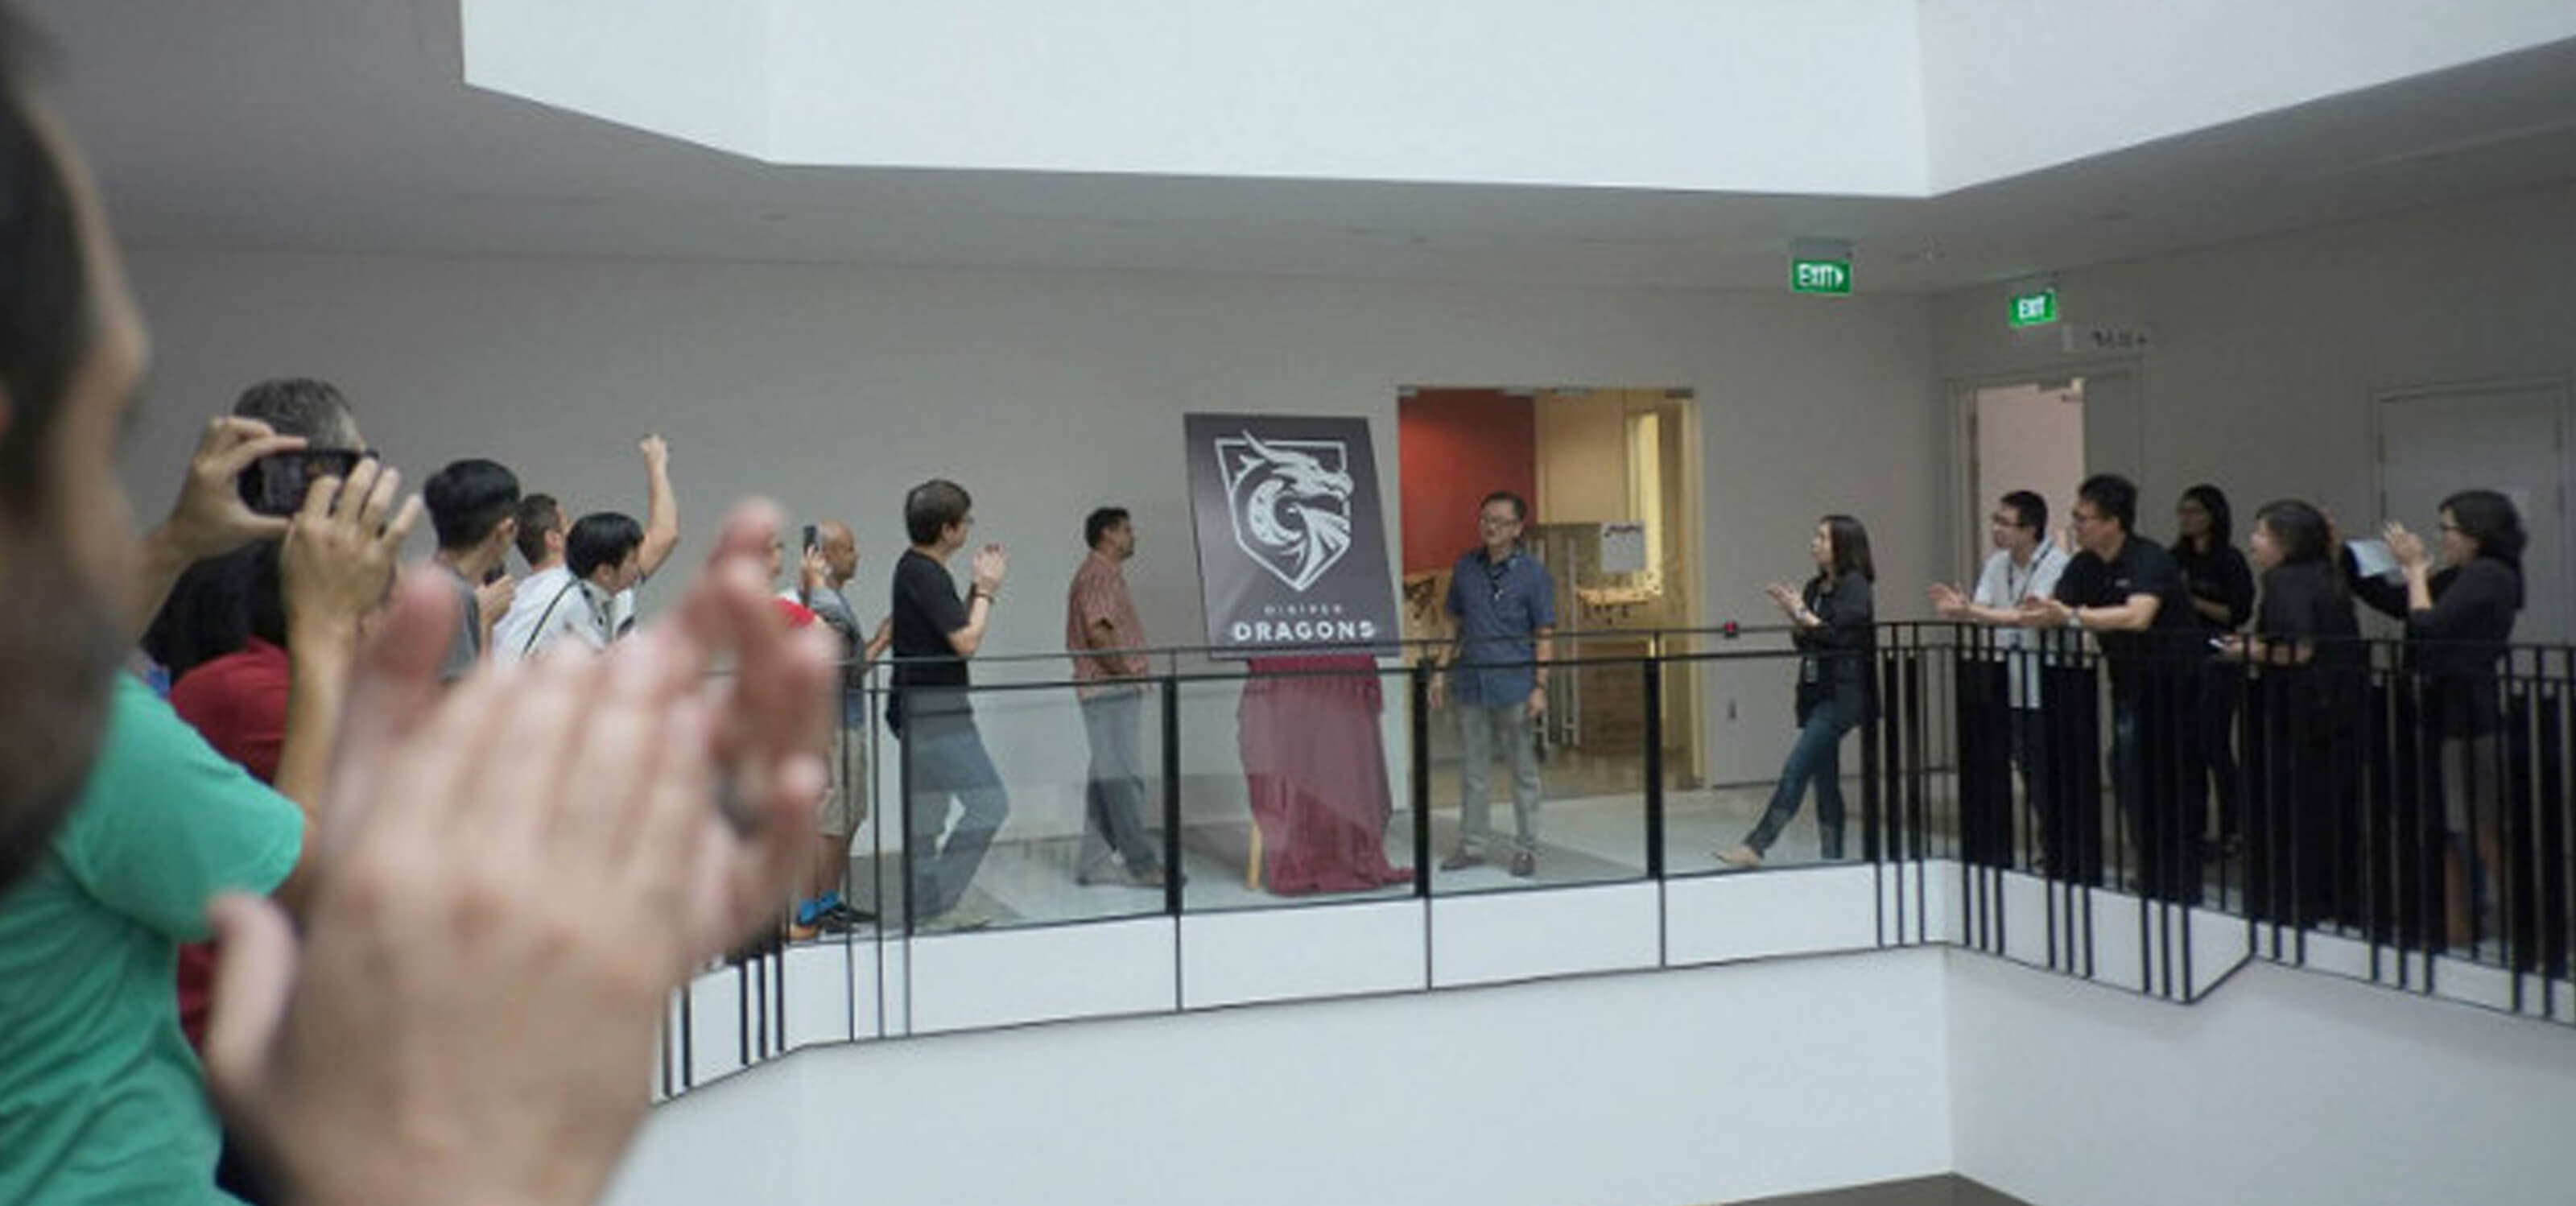 People on the second floor applaud the unveiling of a poster depicting the DigiPen Dragons logo